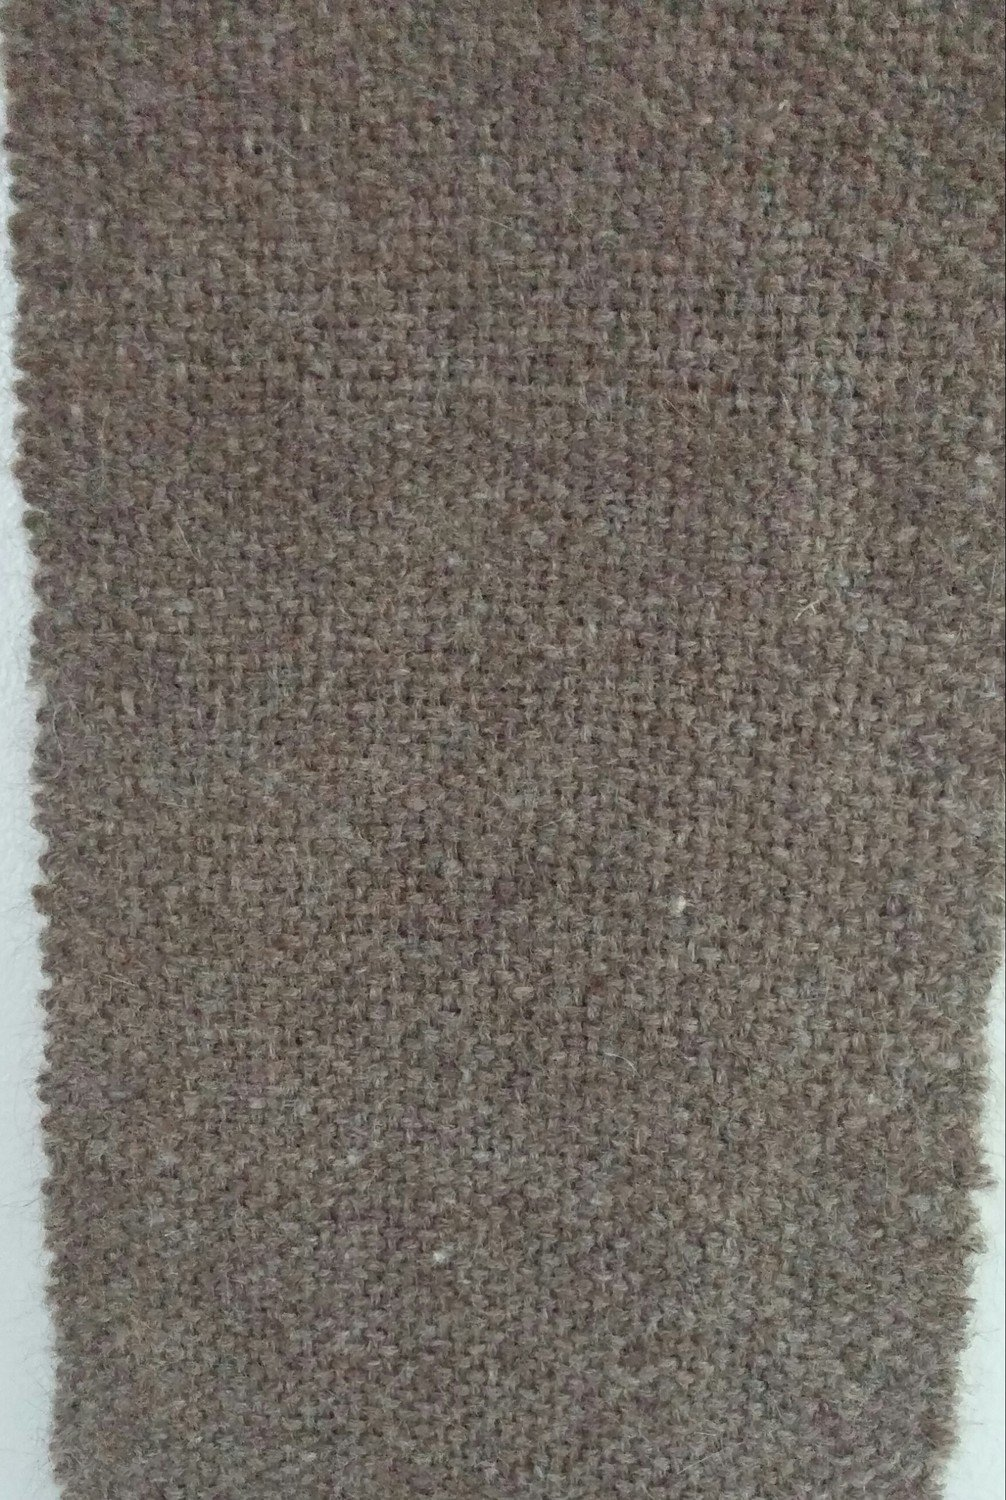 Handwoven Scarf - Rose Gray